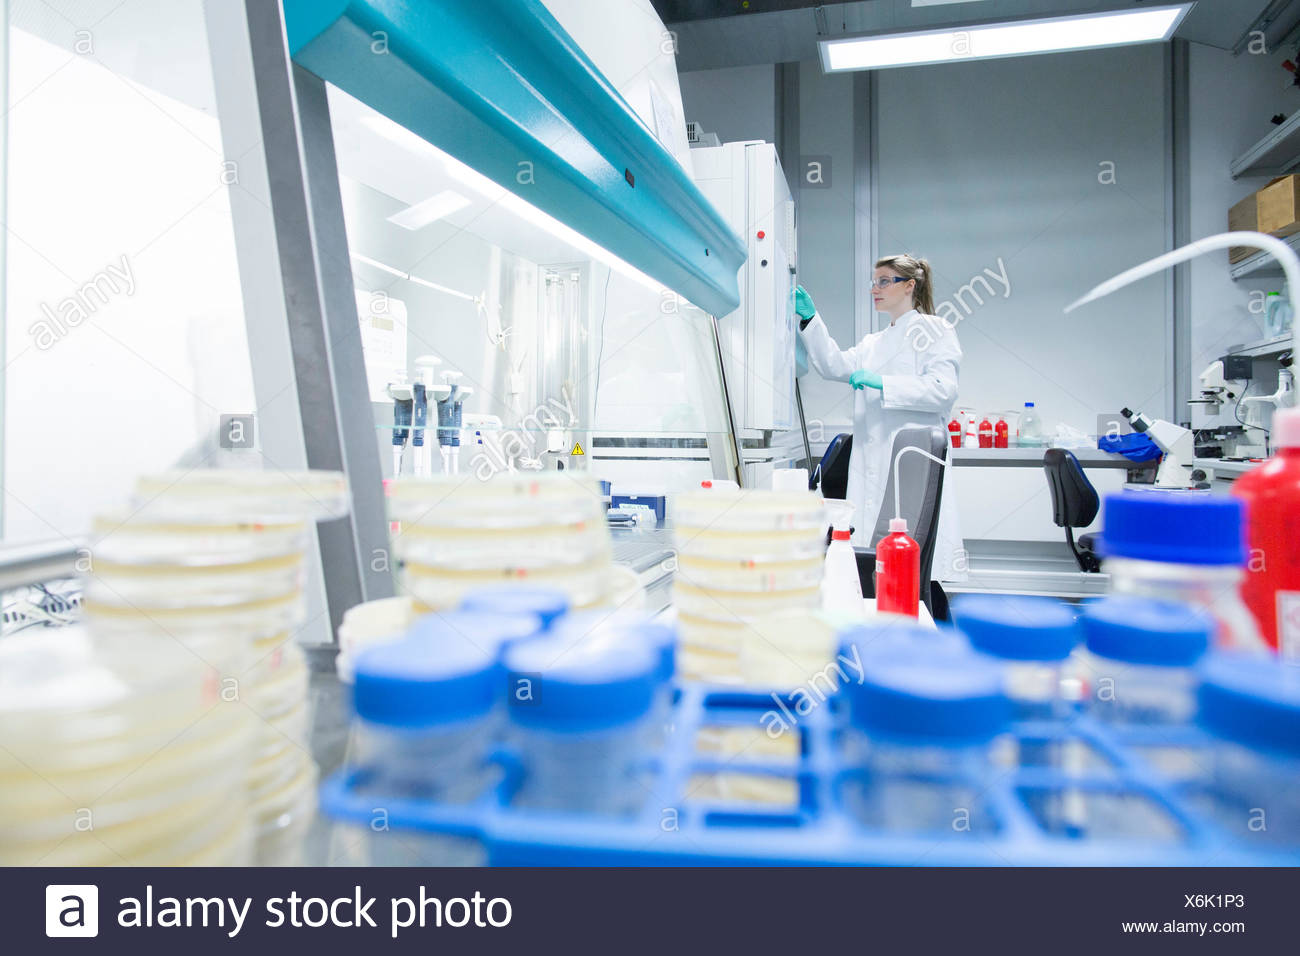 Young female scientist working at biological laboratory inspecting samples - Stock Image